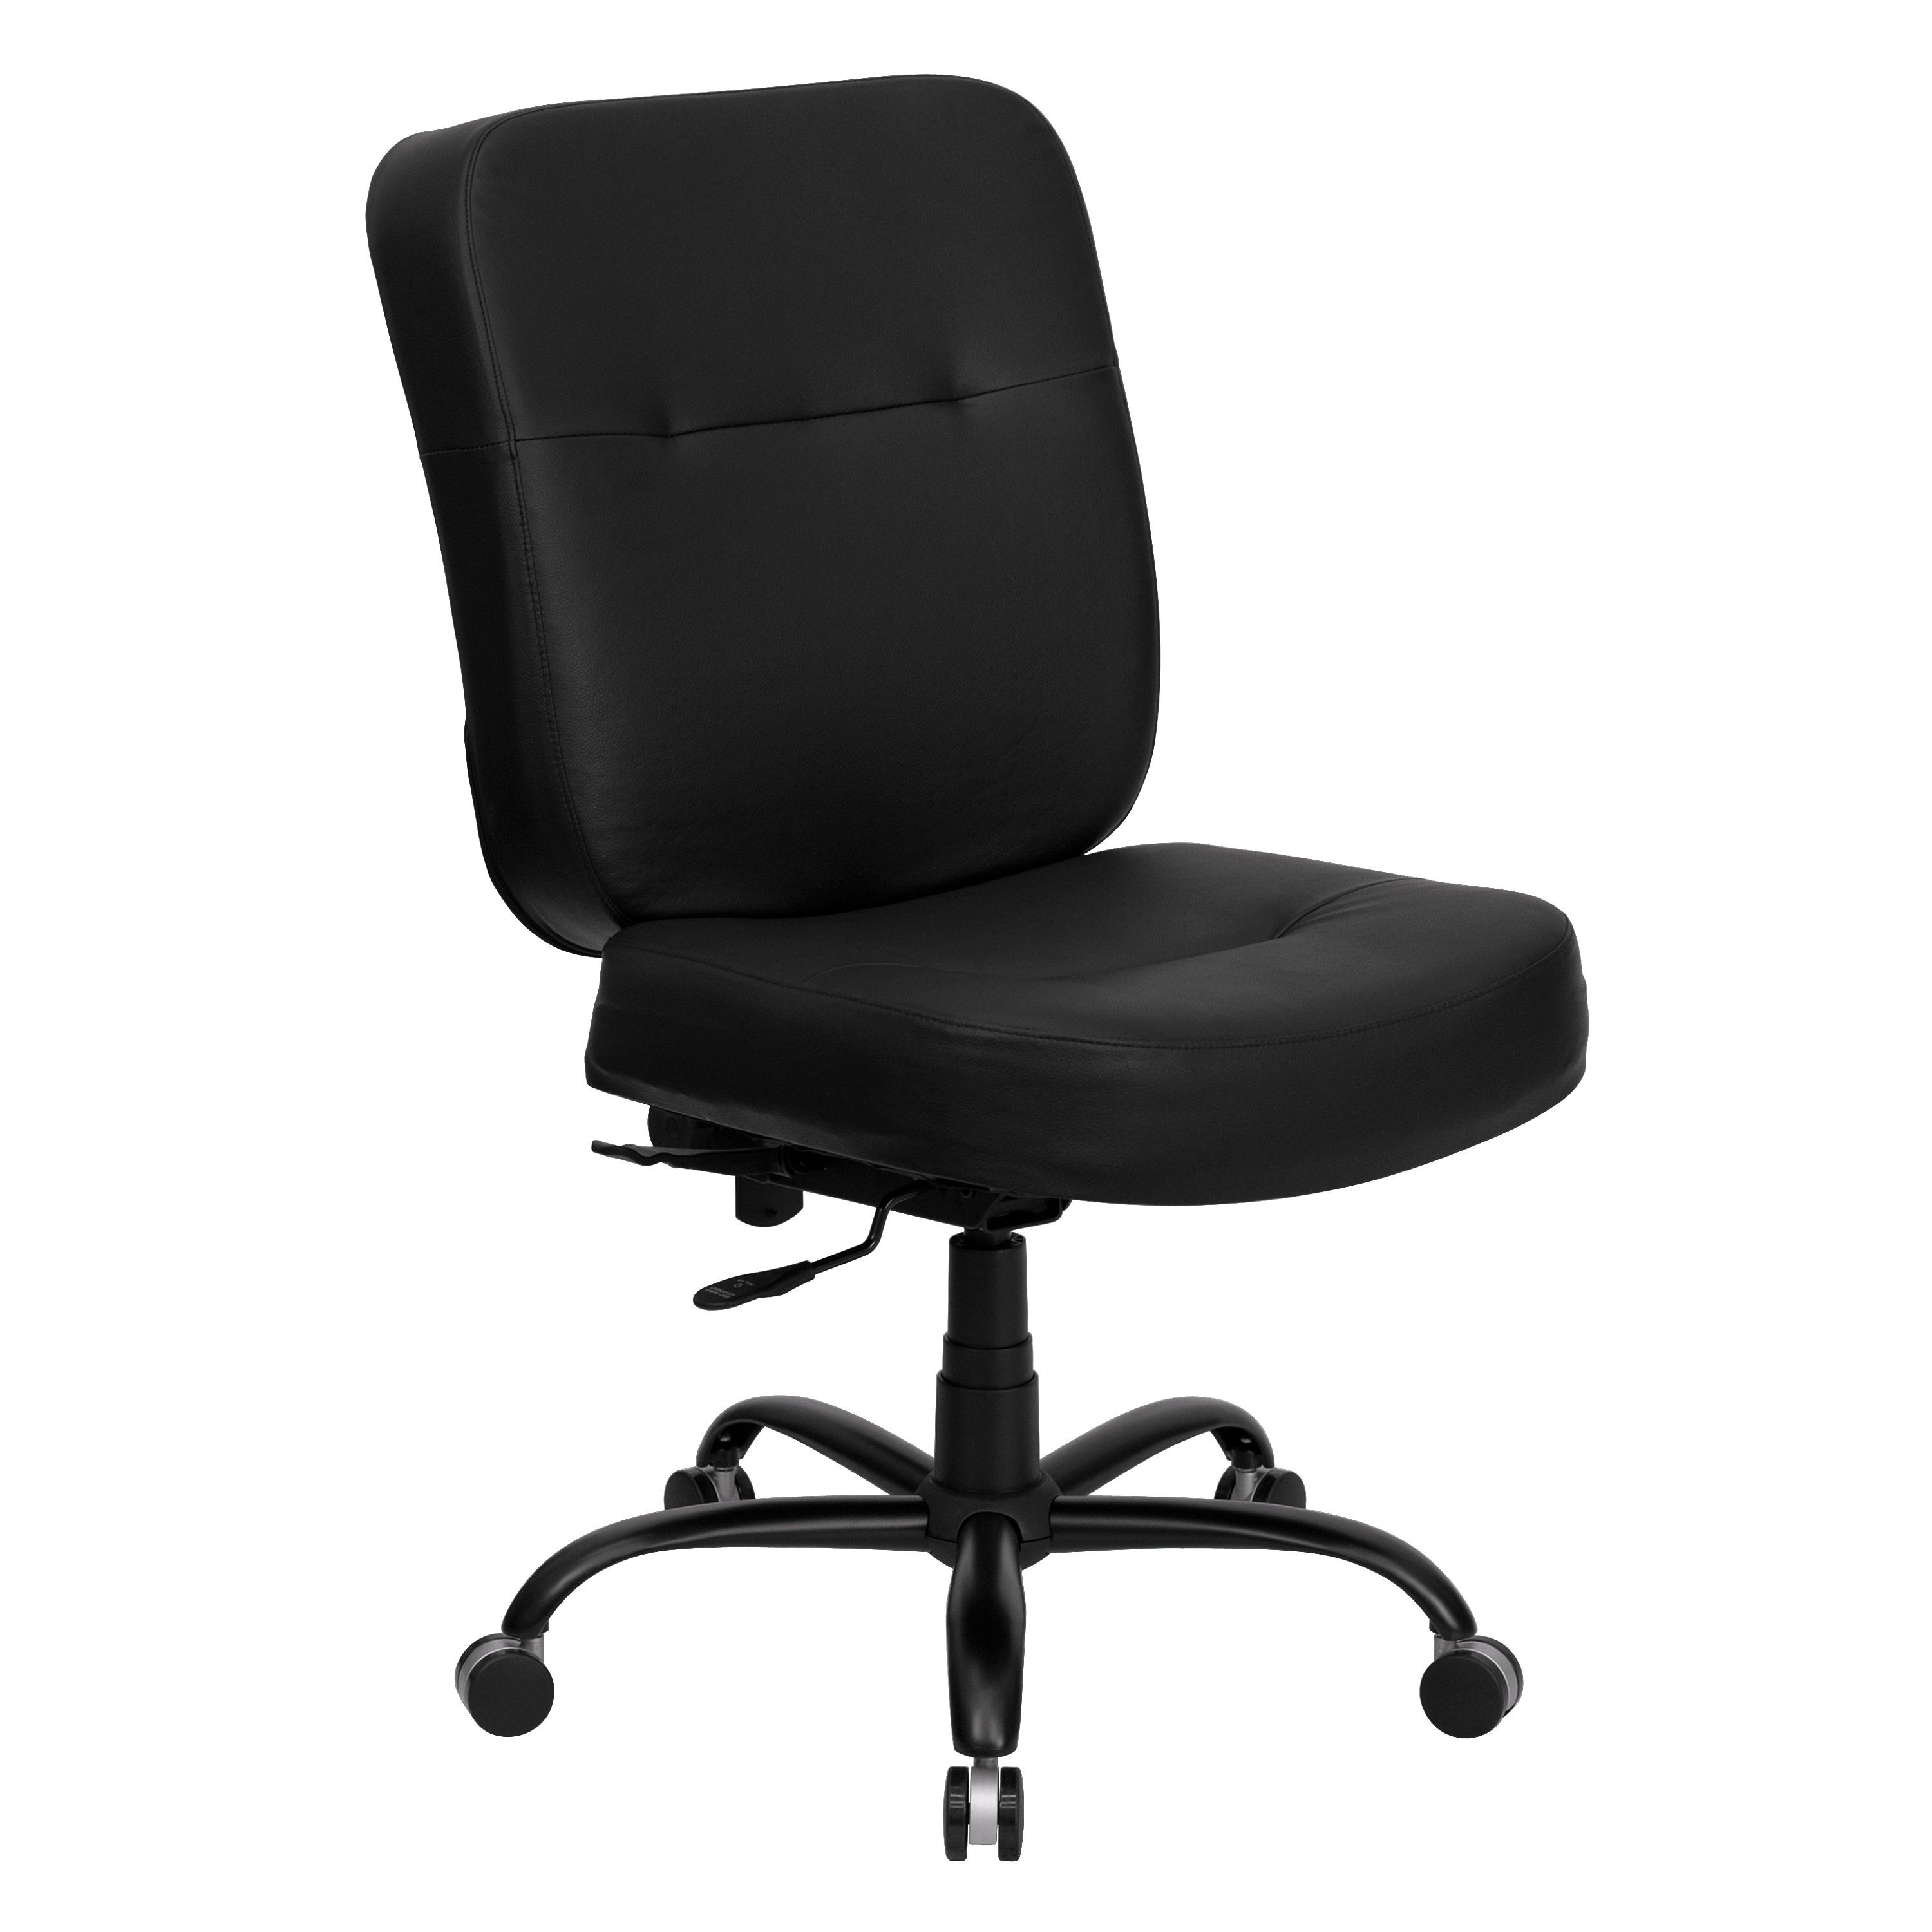 Flash Furniture WL-735SYG-BK-LEA-GG HERCULES Series Big & Tall Black Leather Executive Task Chair with Extra Wide Seat, 400 Lb. Capacity